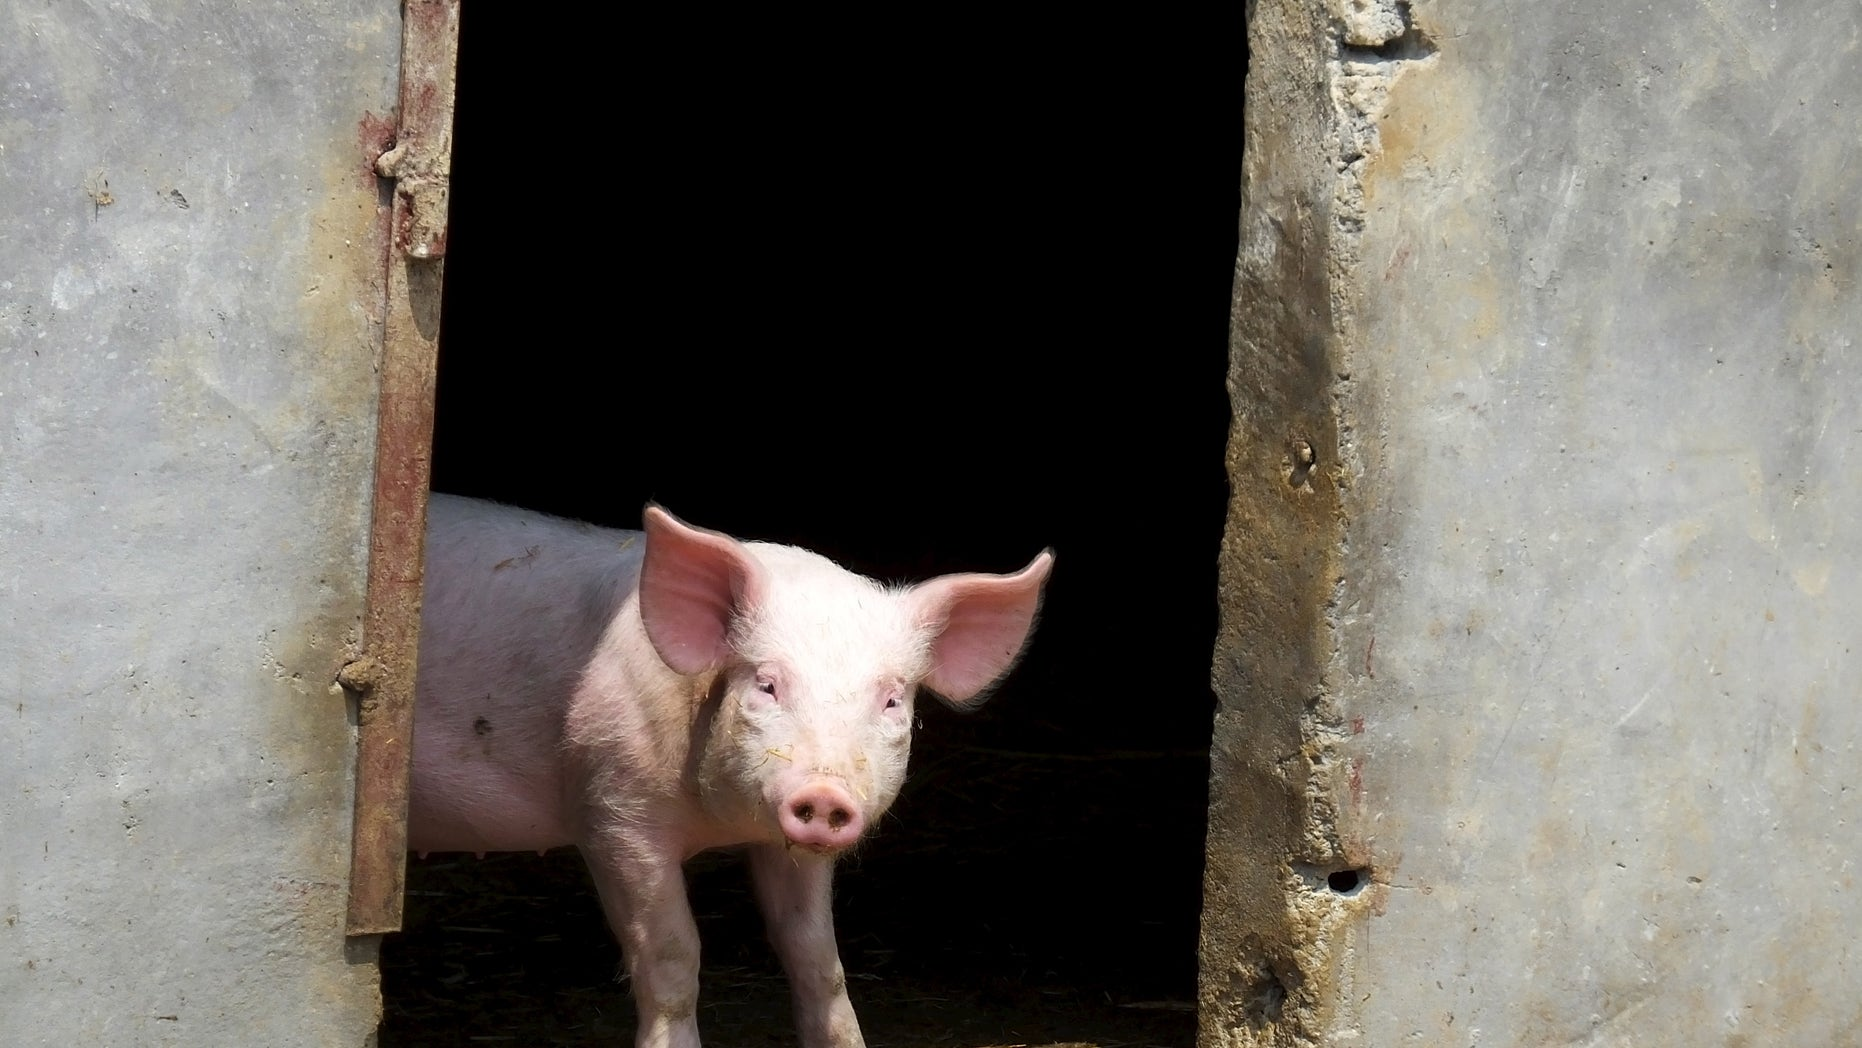 A pig stands in a doorway. (Reuters)